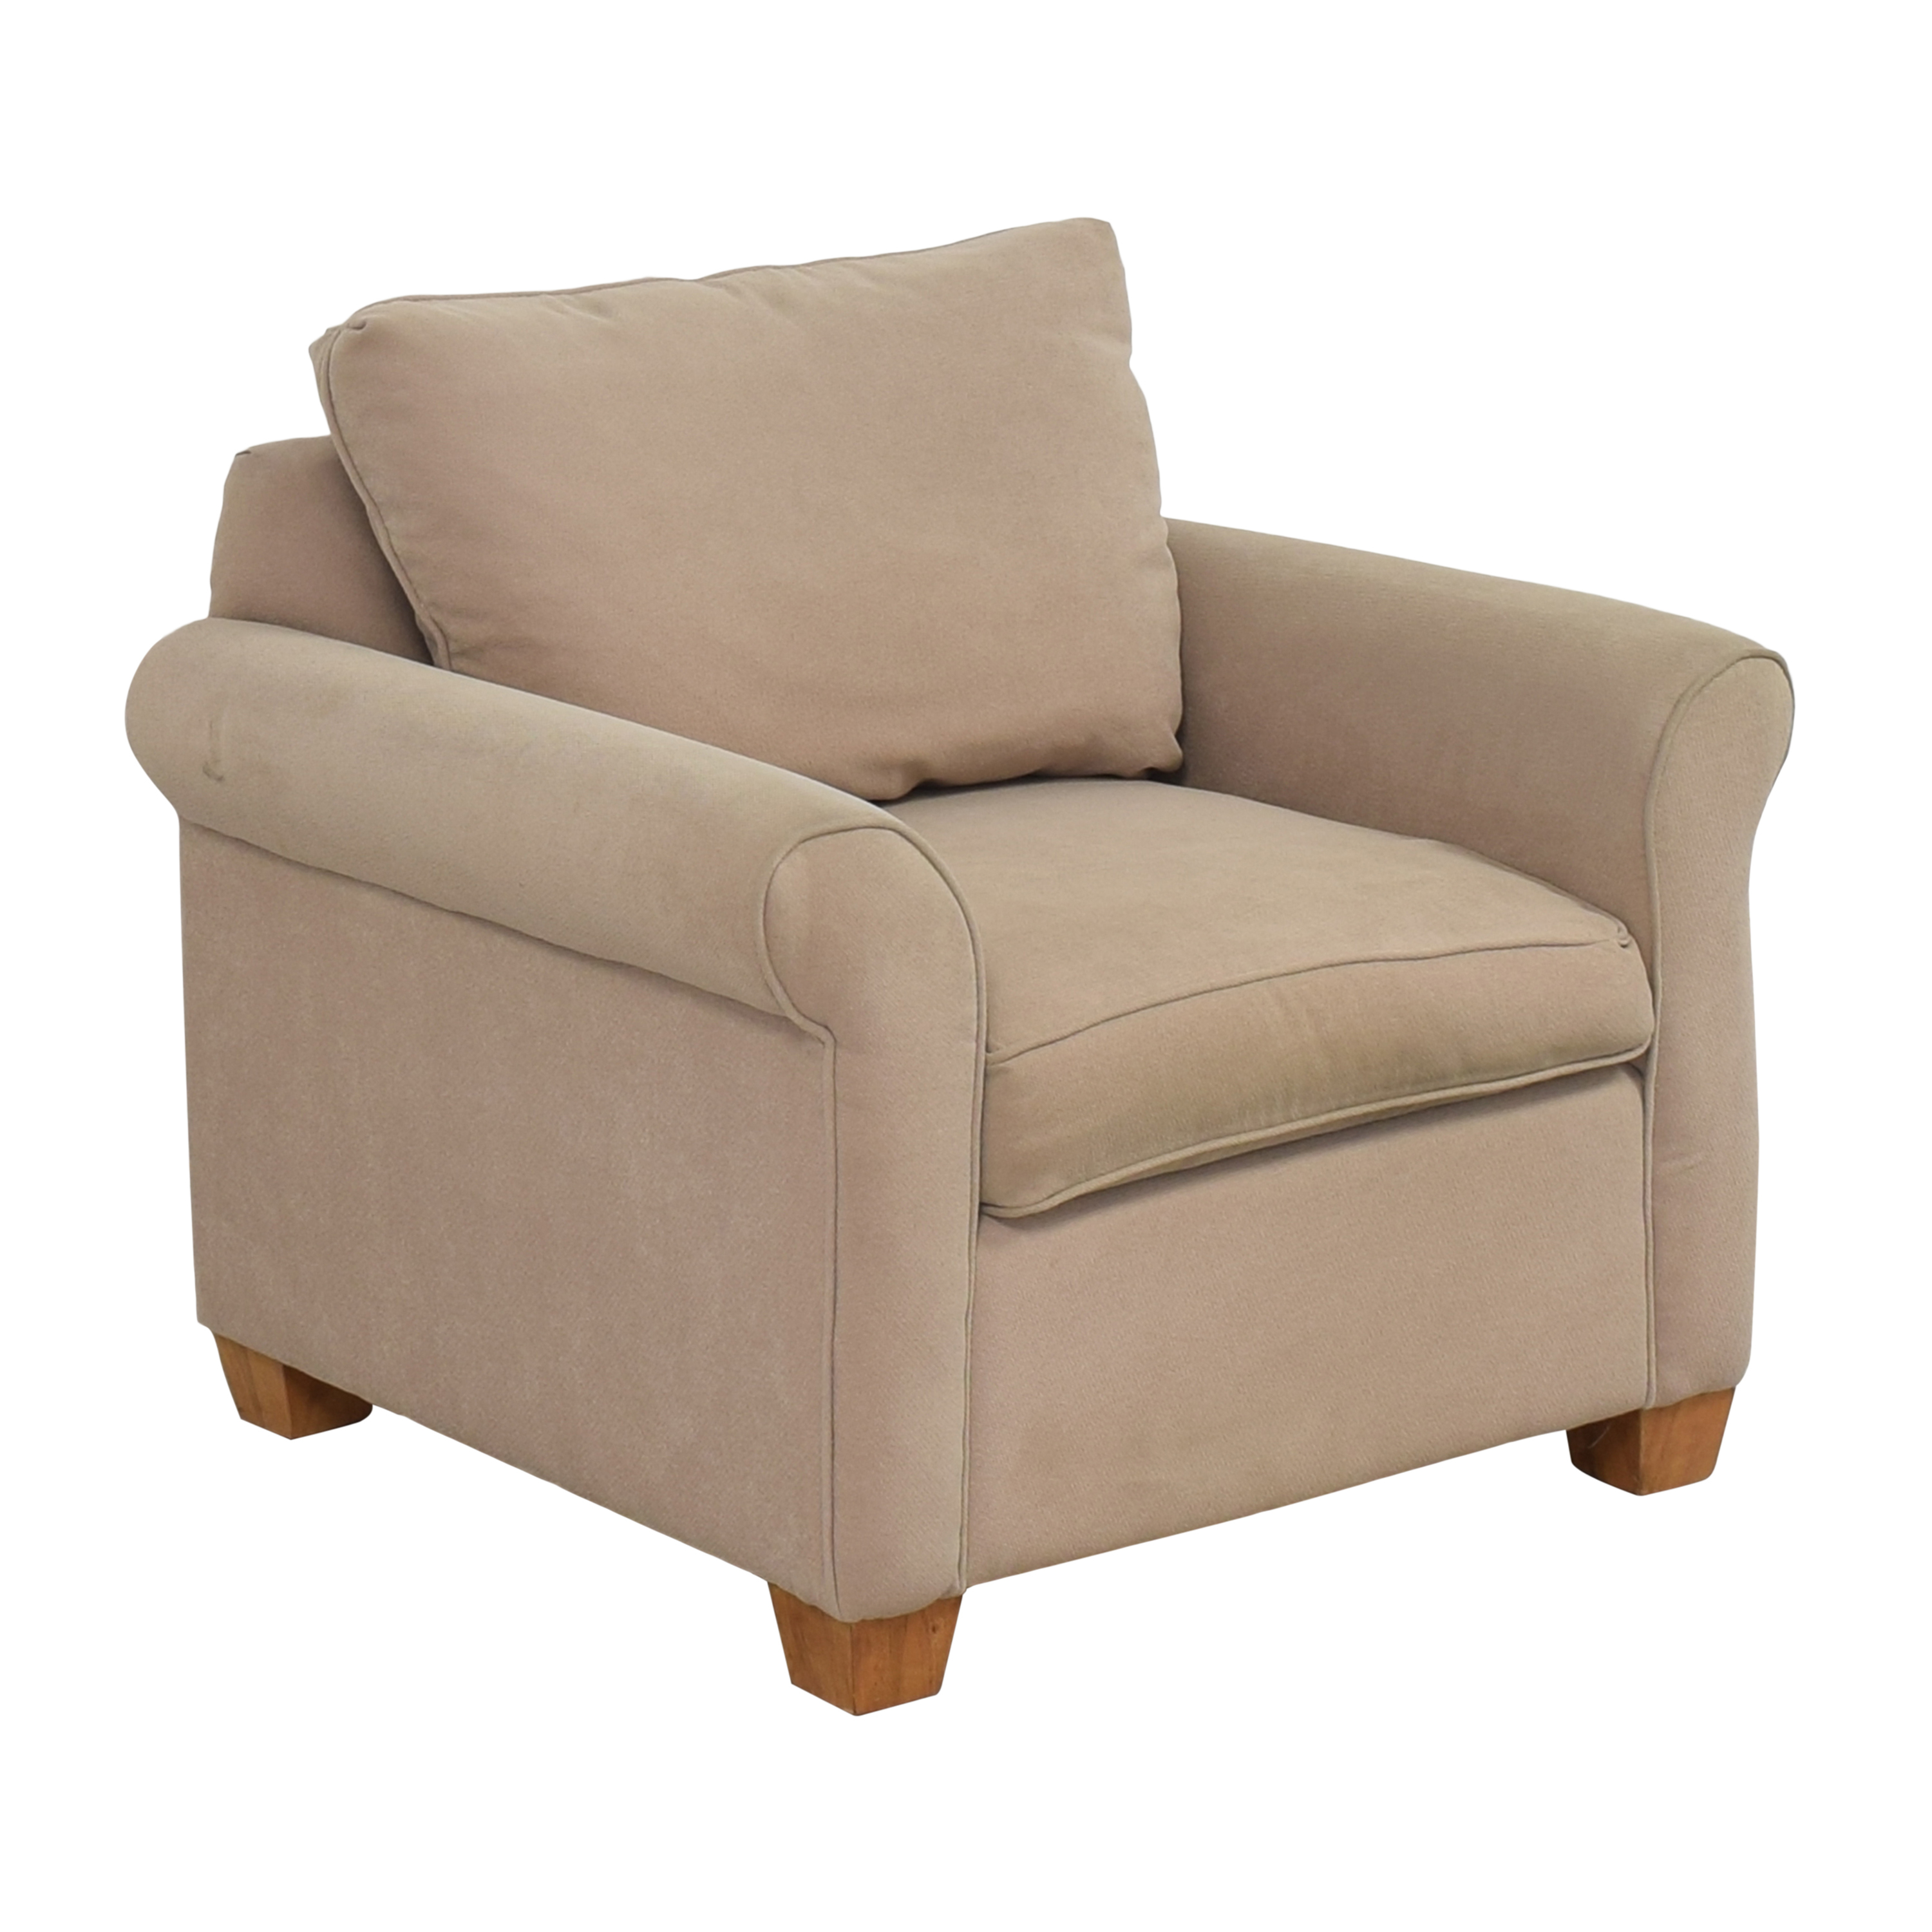 Braxton Culler Accent Chair / Accent Chairs